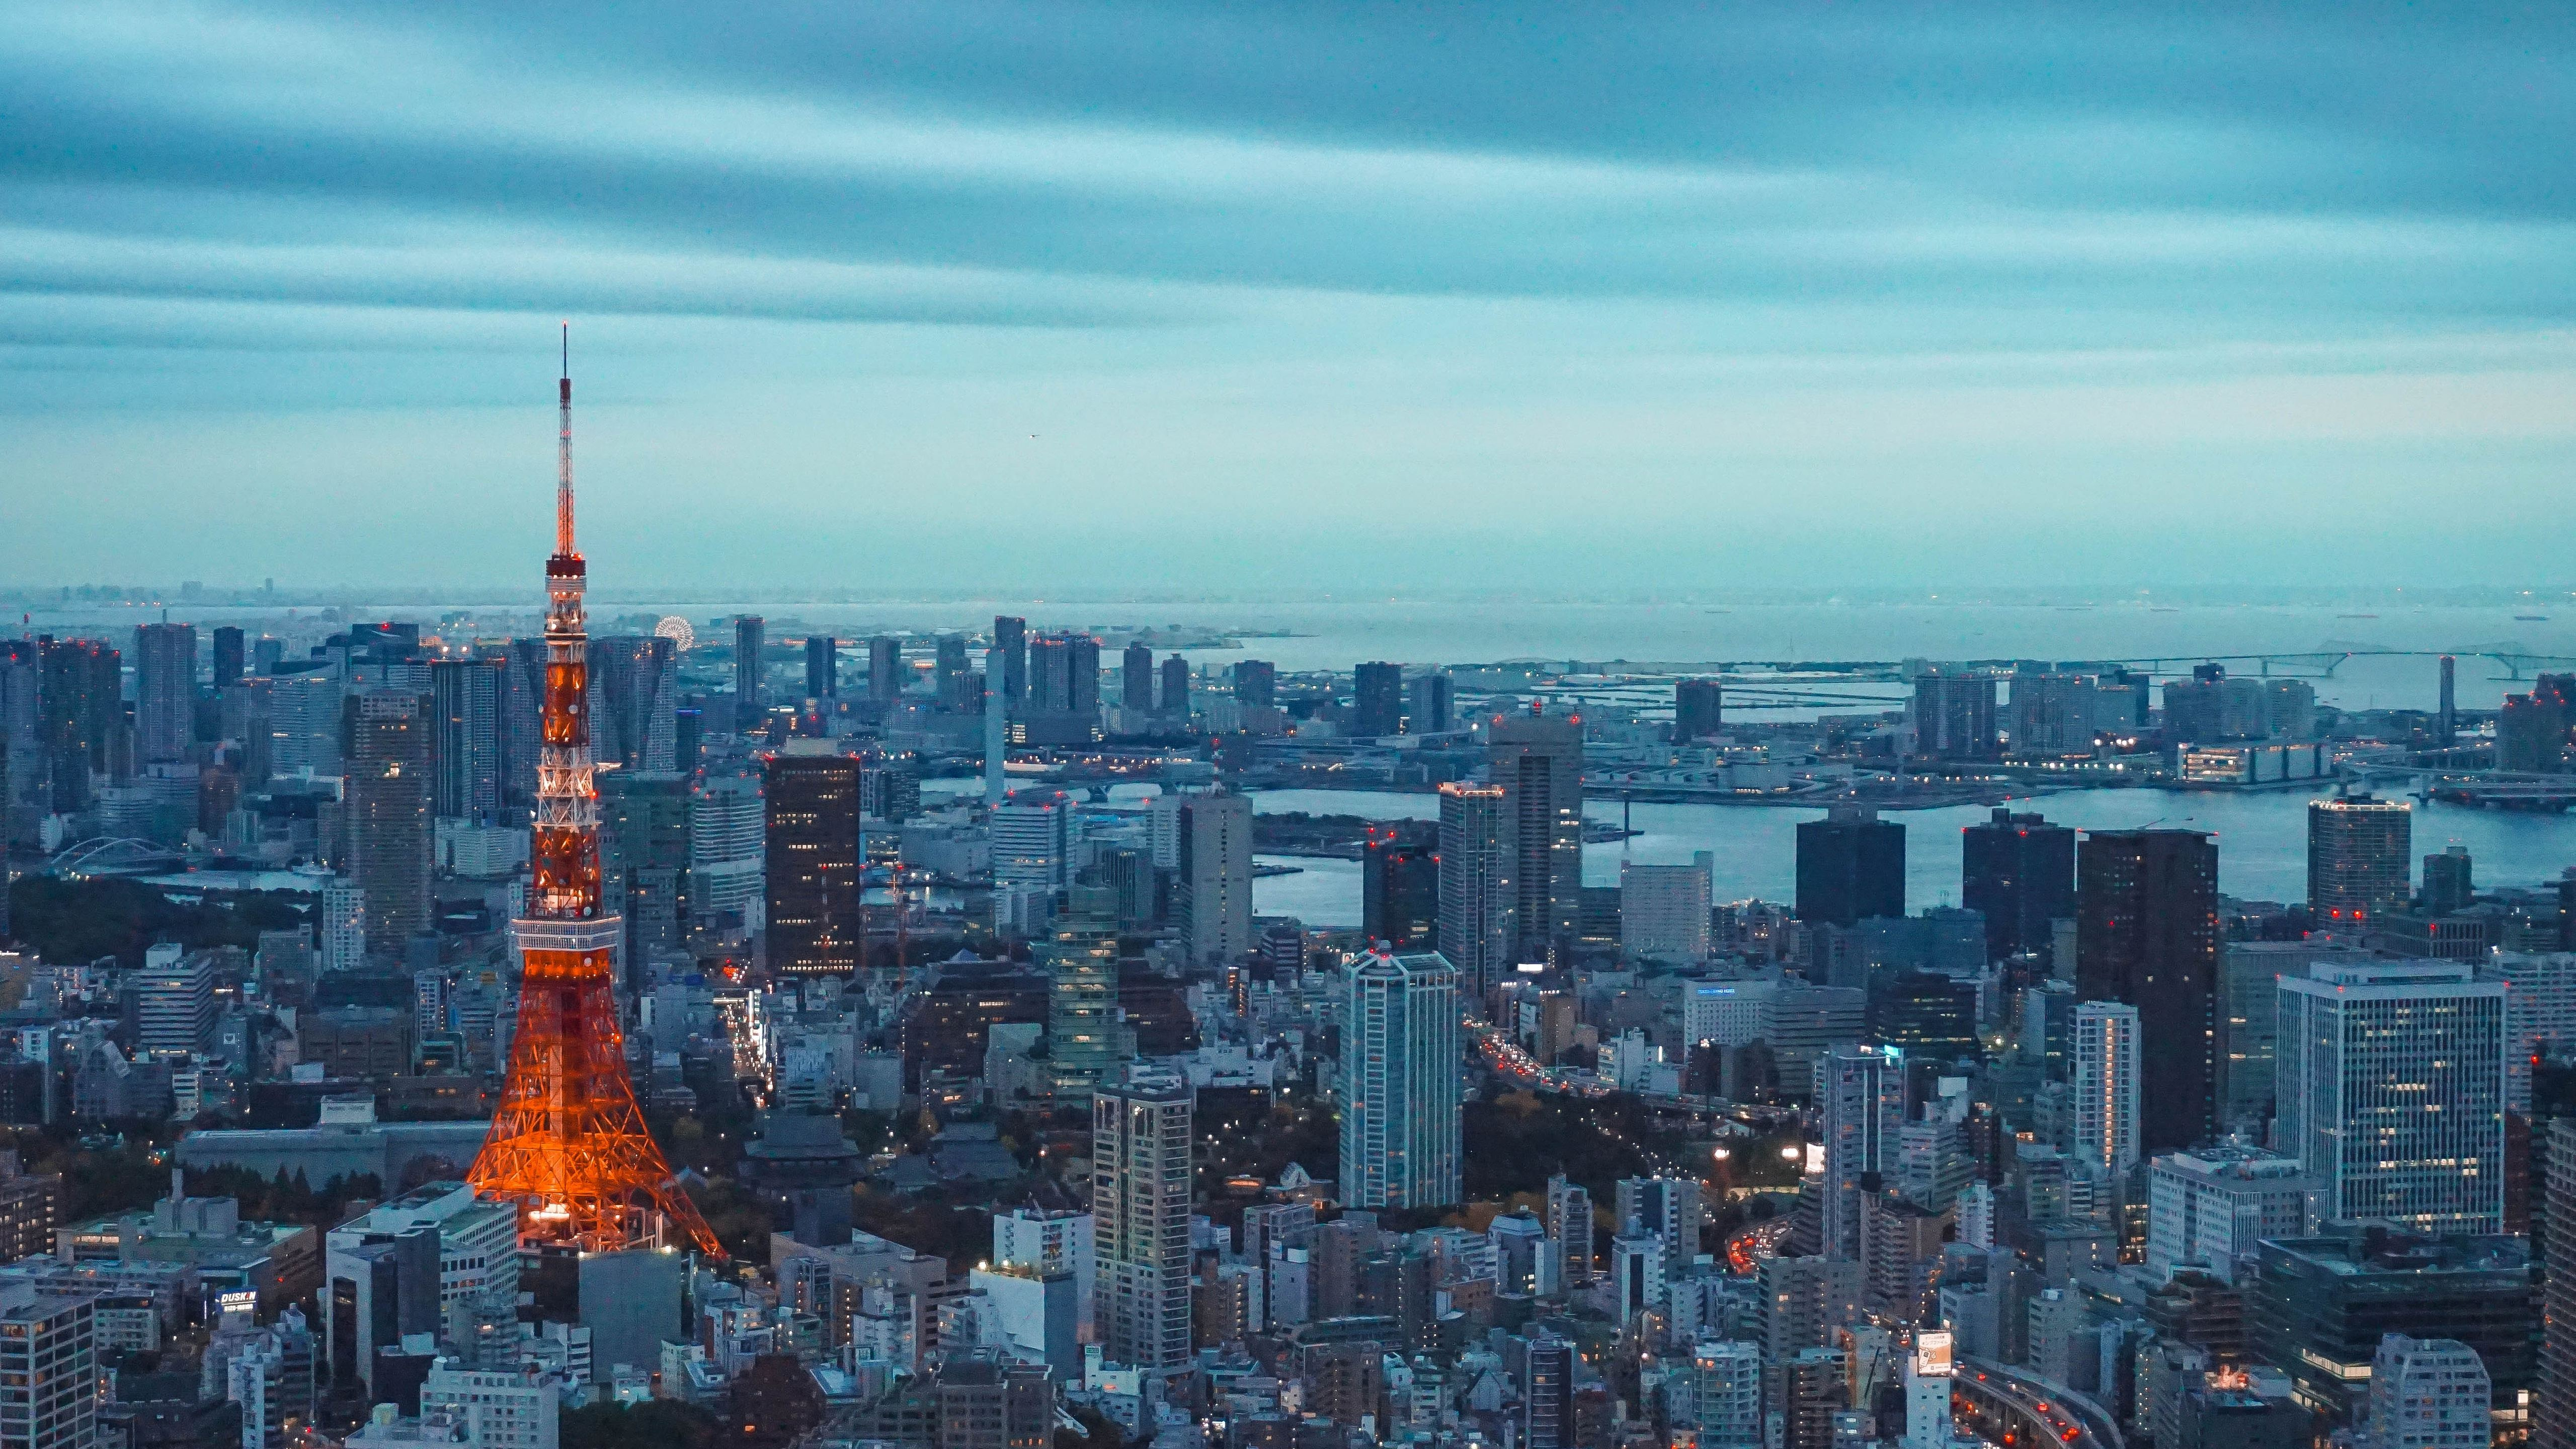 Cute Wallpapers For Phones For Free Tokyo Tower Wallpaper Hd Wallpapers Pulse